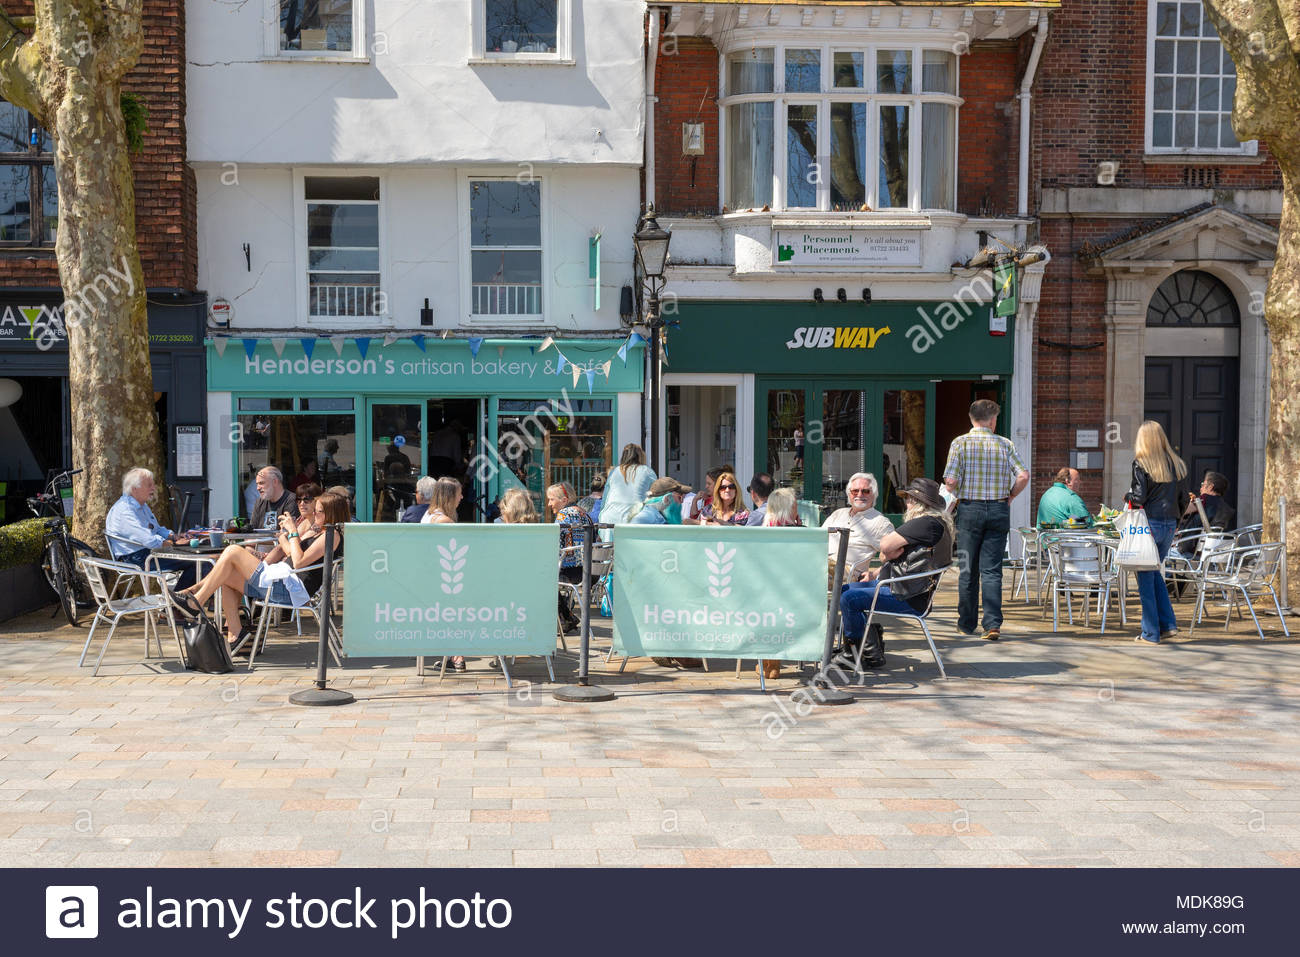 Salisbury Wiltshire Uk 20th April 2018 Bright And Warm Weather On The Day That Defra Has Declared The City Safe For Tourists And Visitors